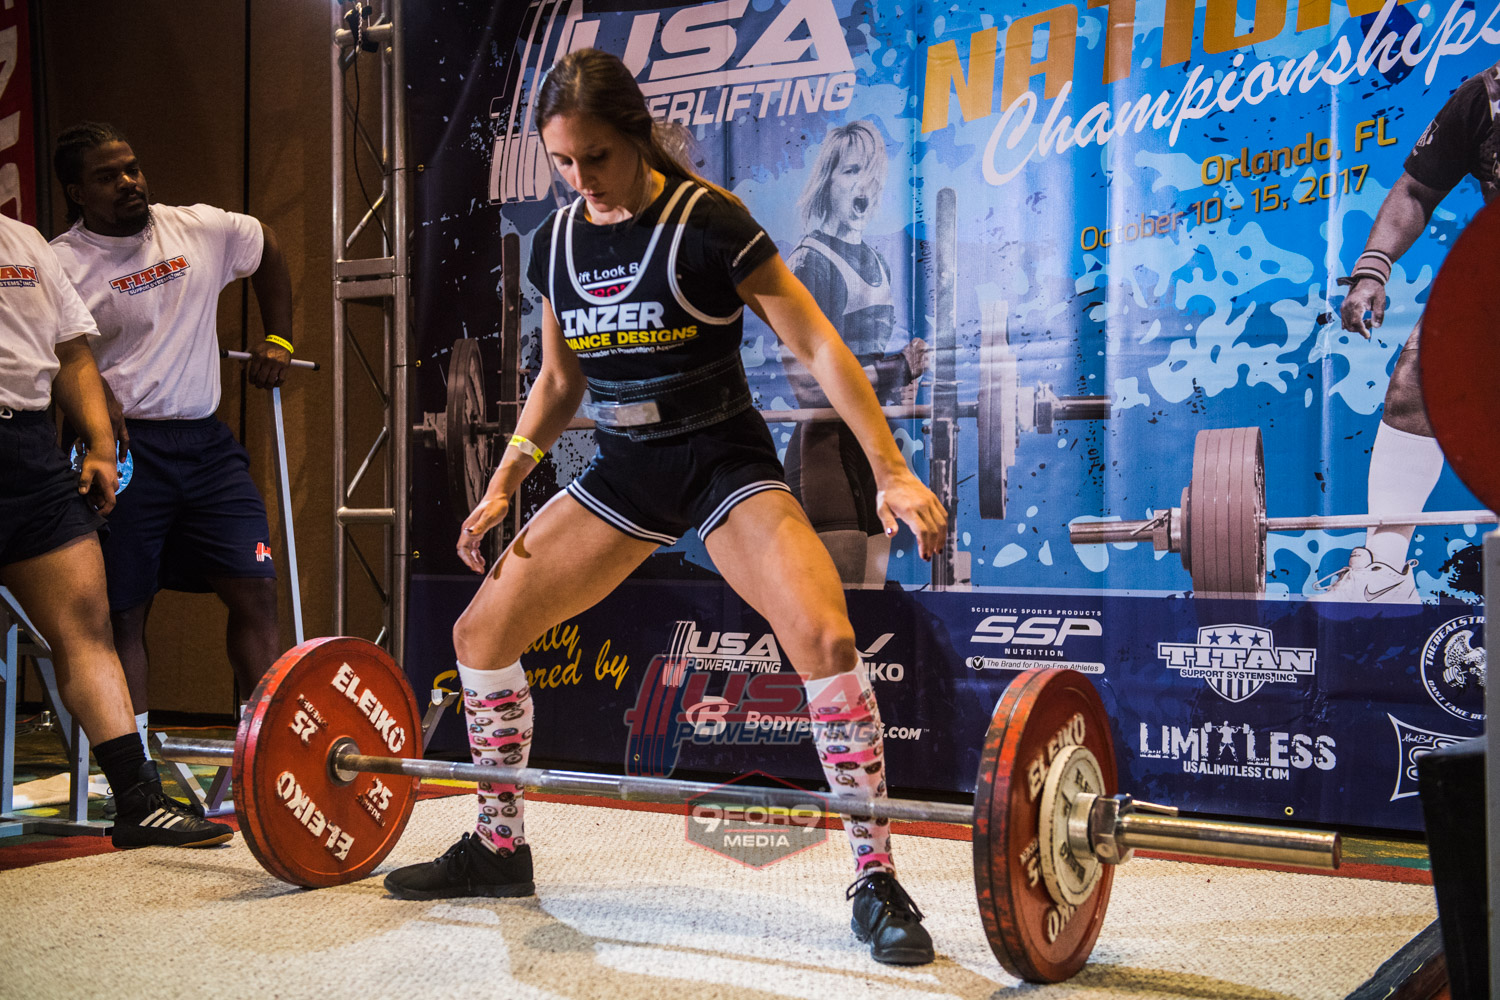 What is Powerlifting? | Smart Fit Girls™